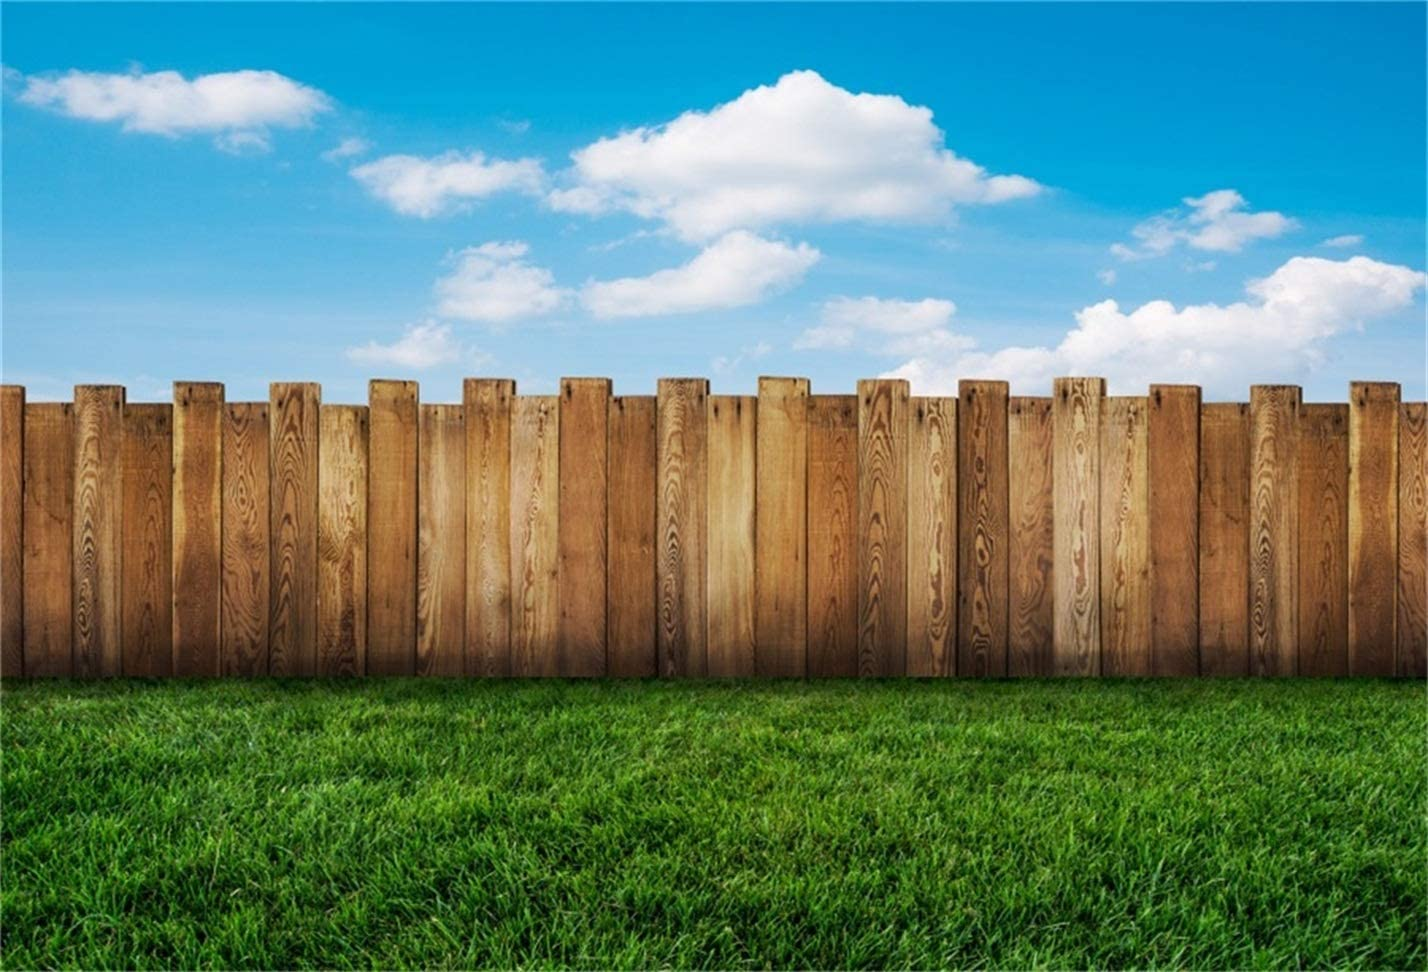 CSFOTO 7x5ft Meadow Background Wood Fence Blue Sky Spring Outdoor Picnic Backdrop for Photography Baby Shower Decor Banner Vacation Holiday Tourism Photo Wallpaper